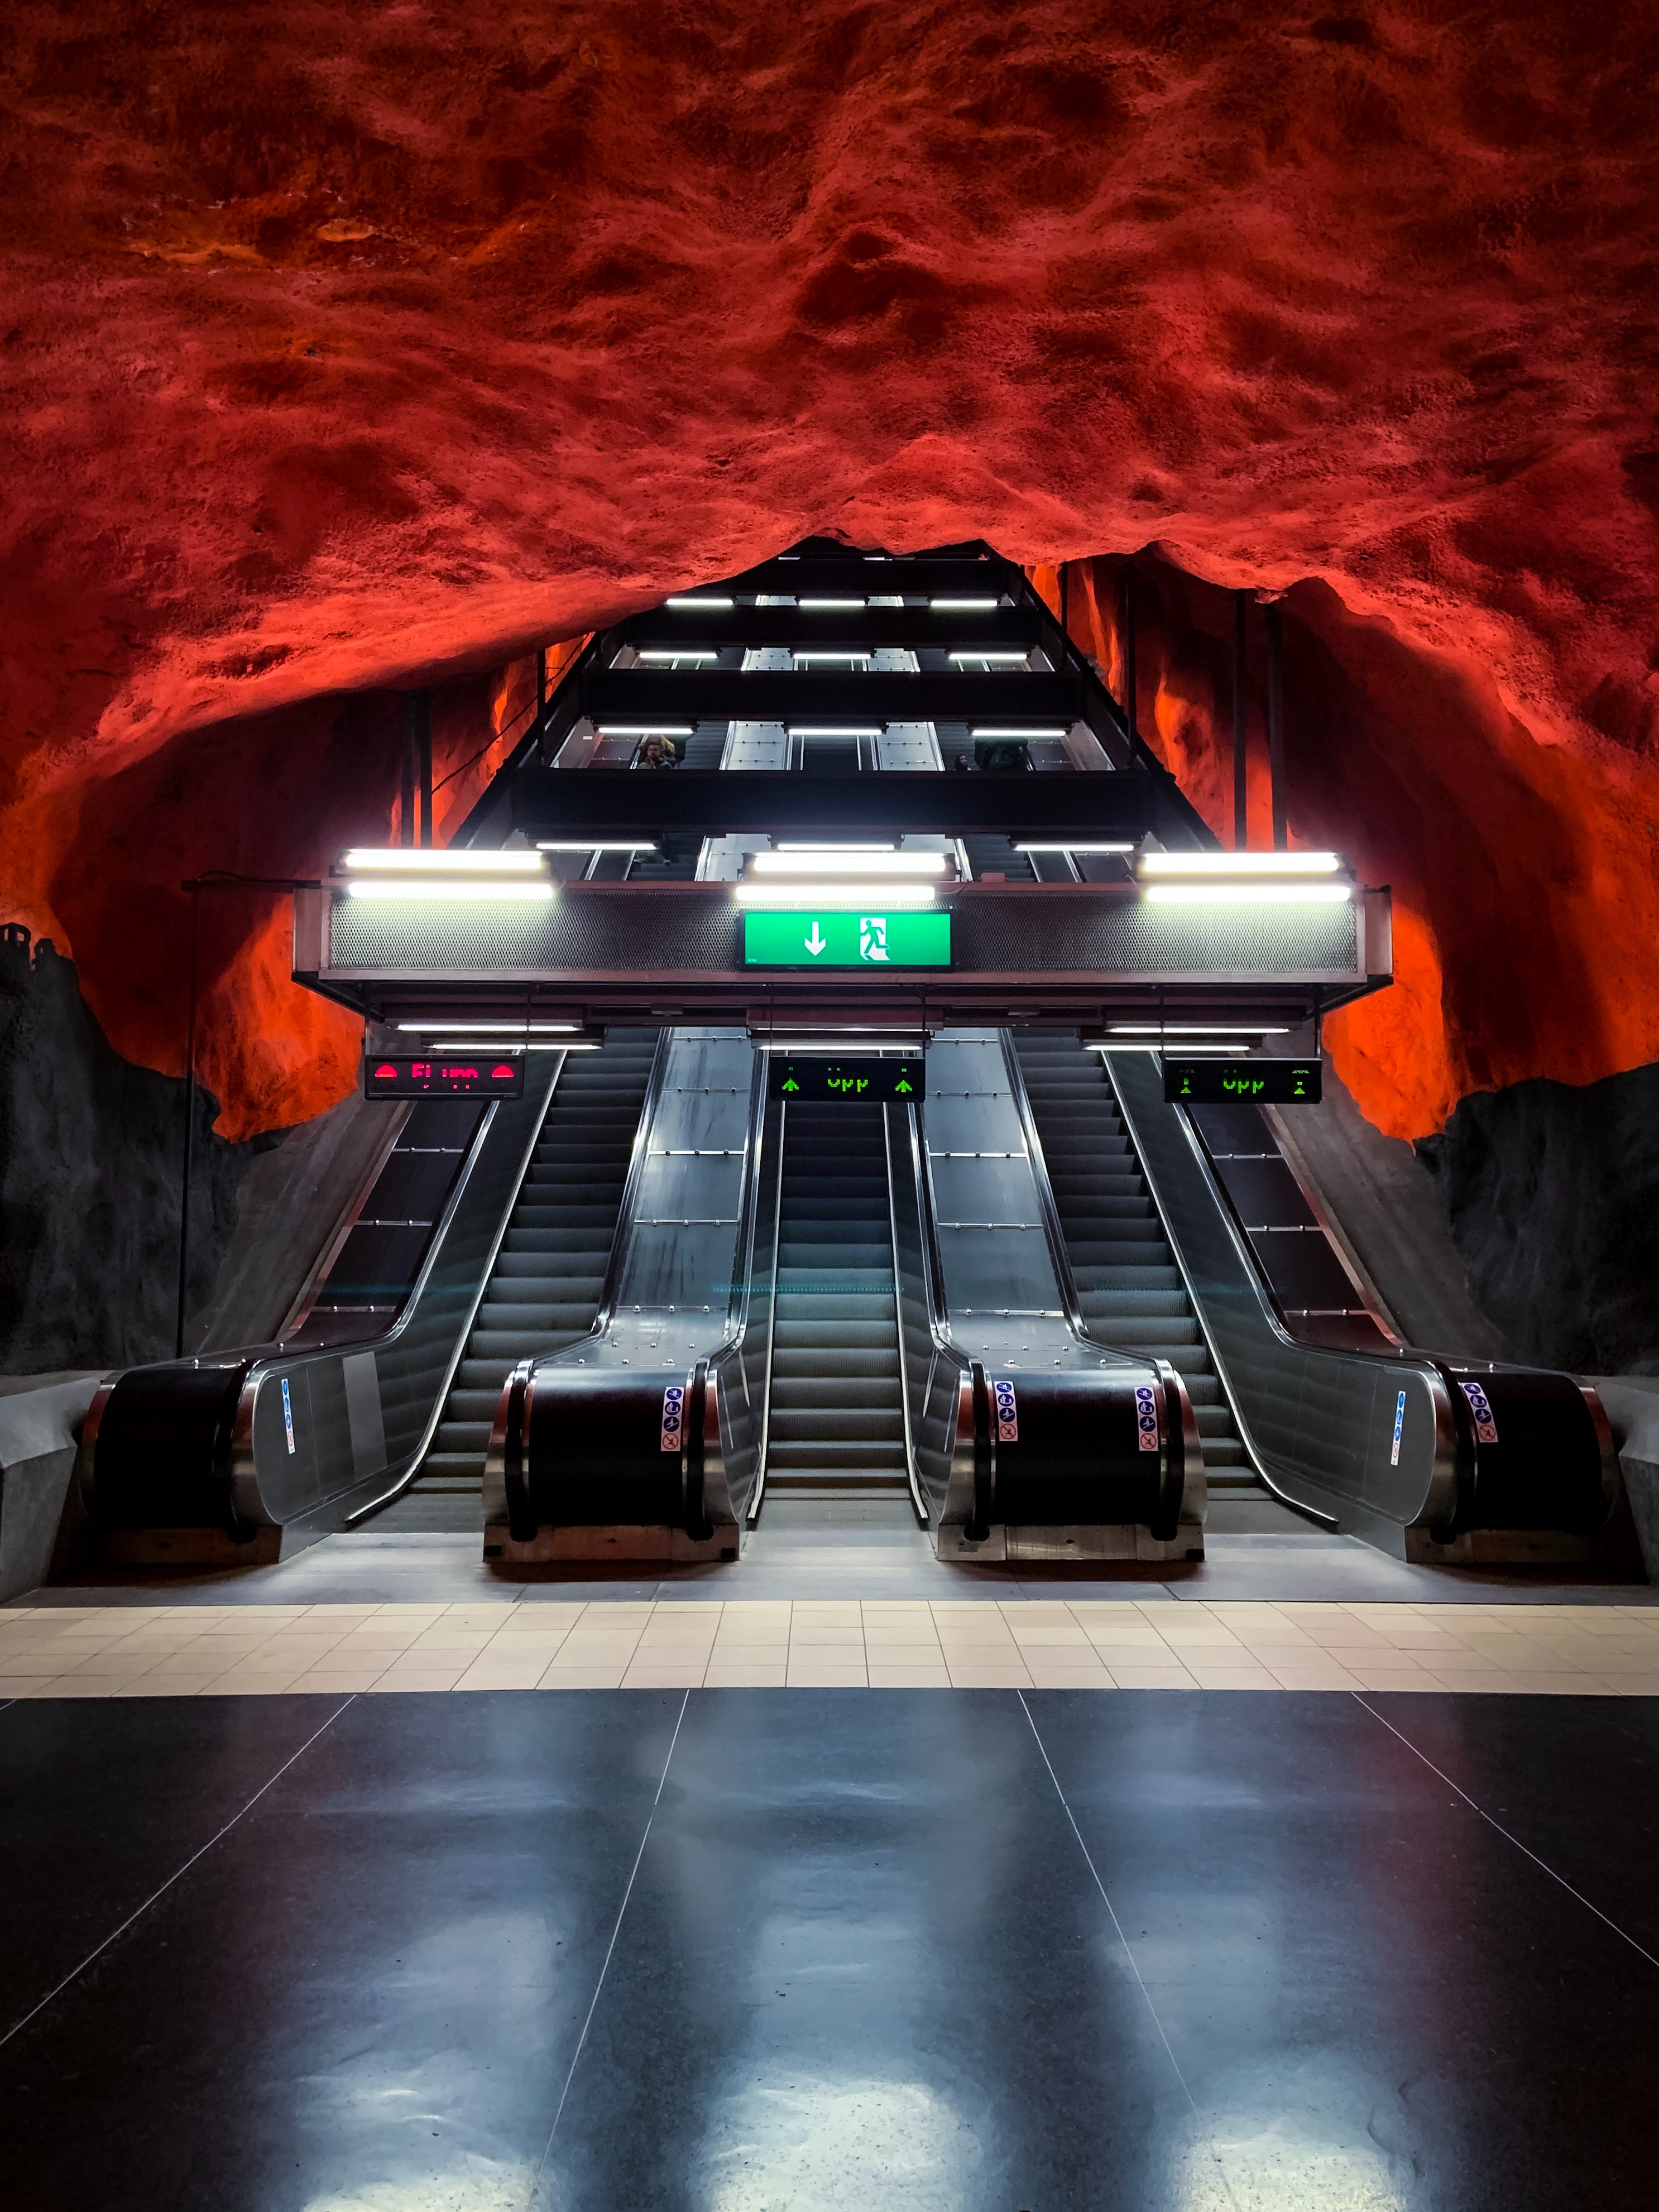 155573 download wallpaper Miscellanea, Miscellaneous, Escalator, Metro, Subway, Station, Tunnel screensavers and pictures for free